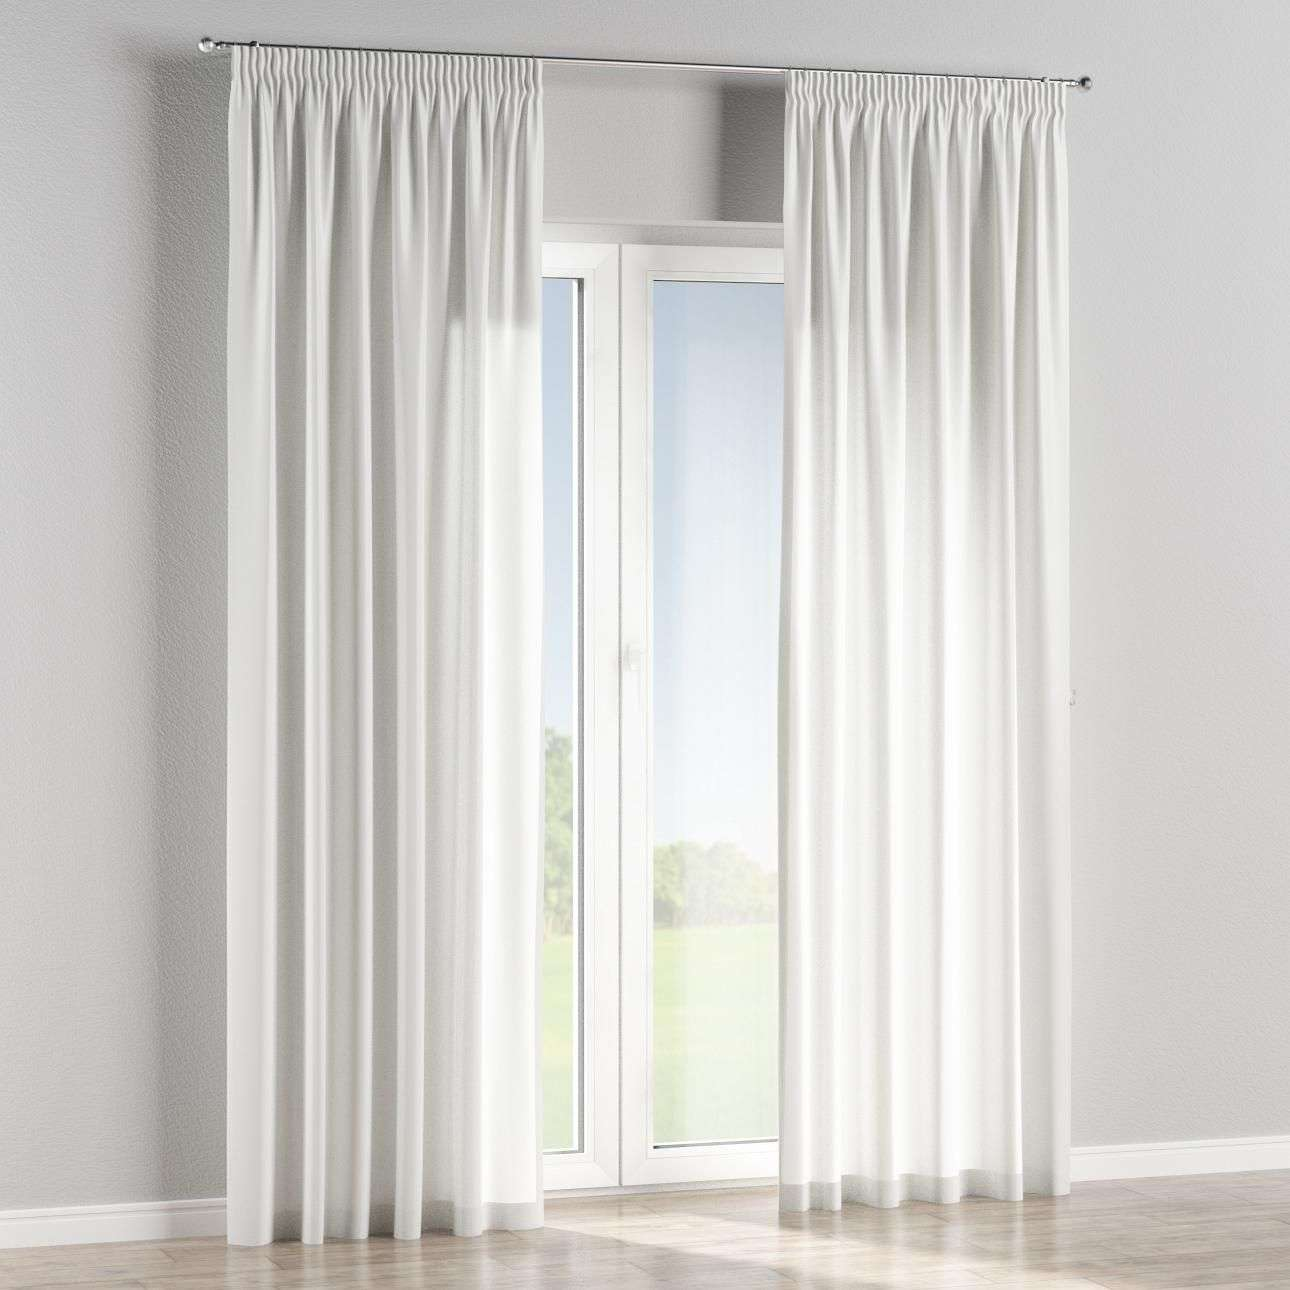 Pencil pleat lined curtains in collection Rustica, fabric: 138-11